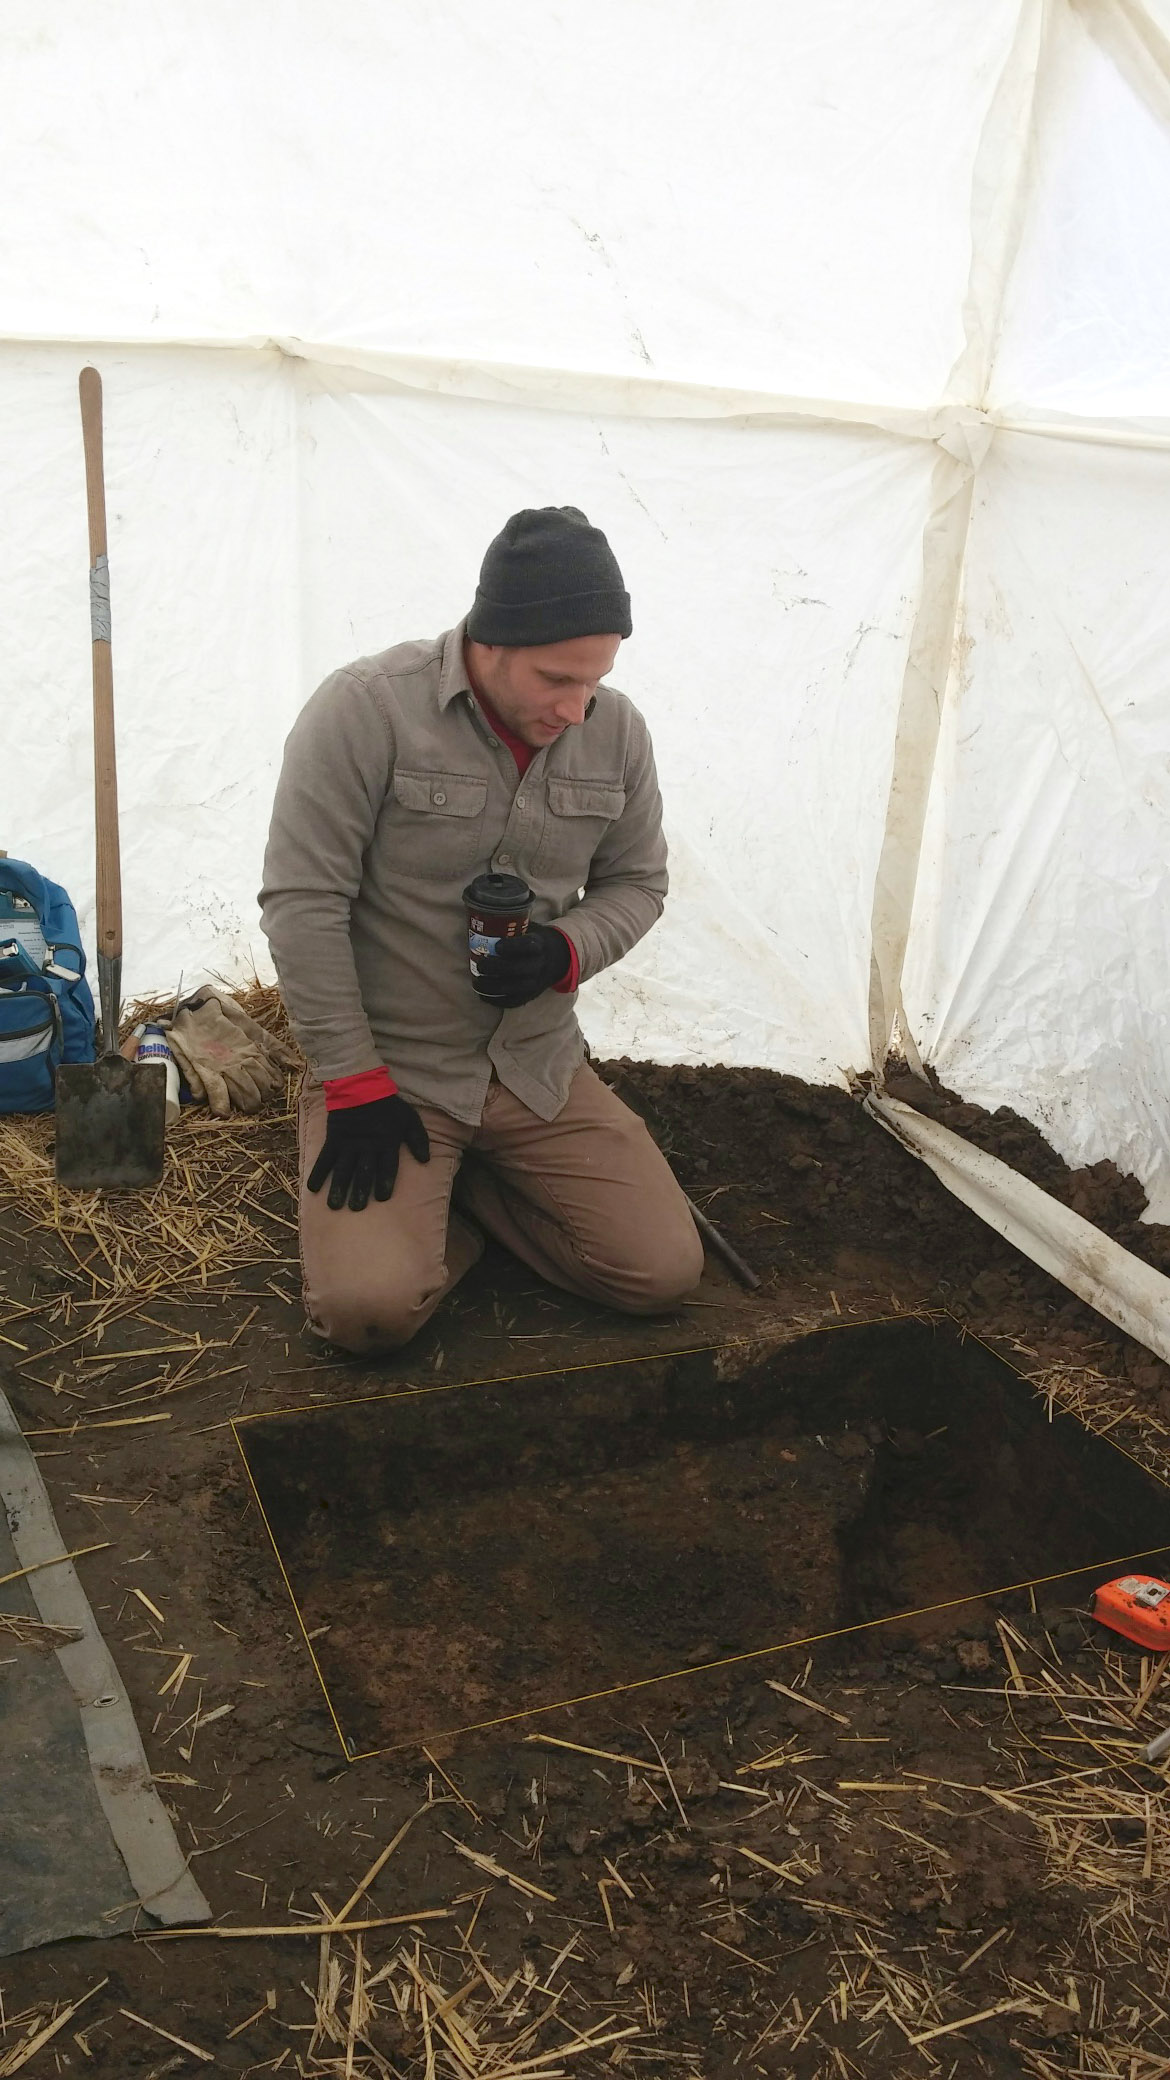 Inside a yurt, Anson Kritsch excavating a historic feature